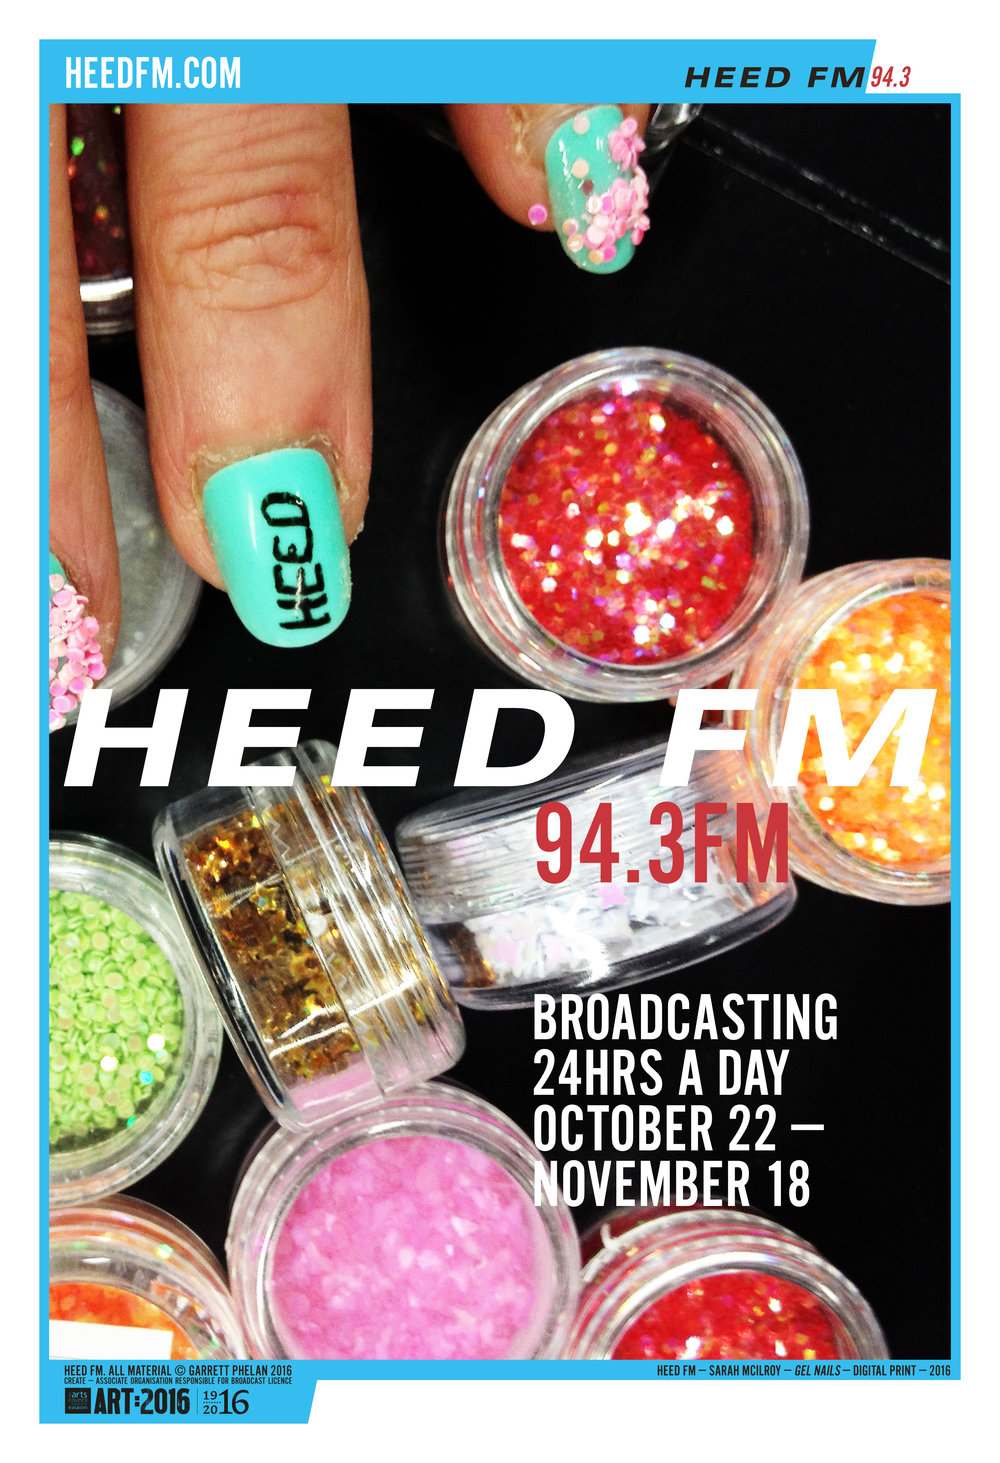 heed fm 4 sheets artwork-10.jpg